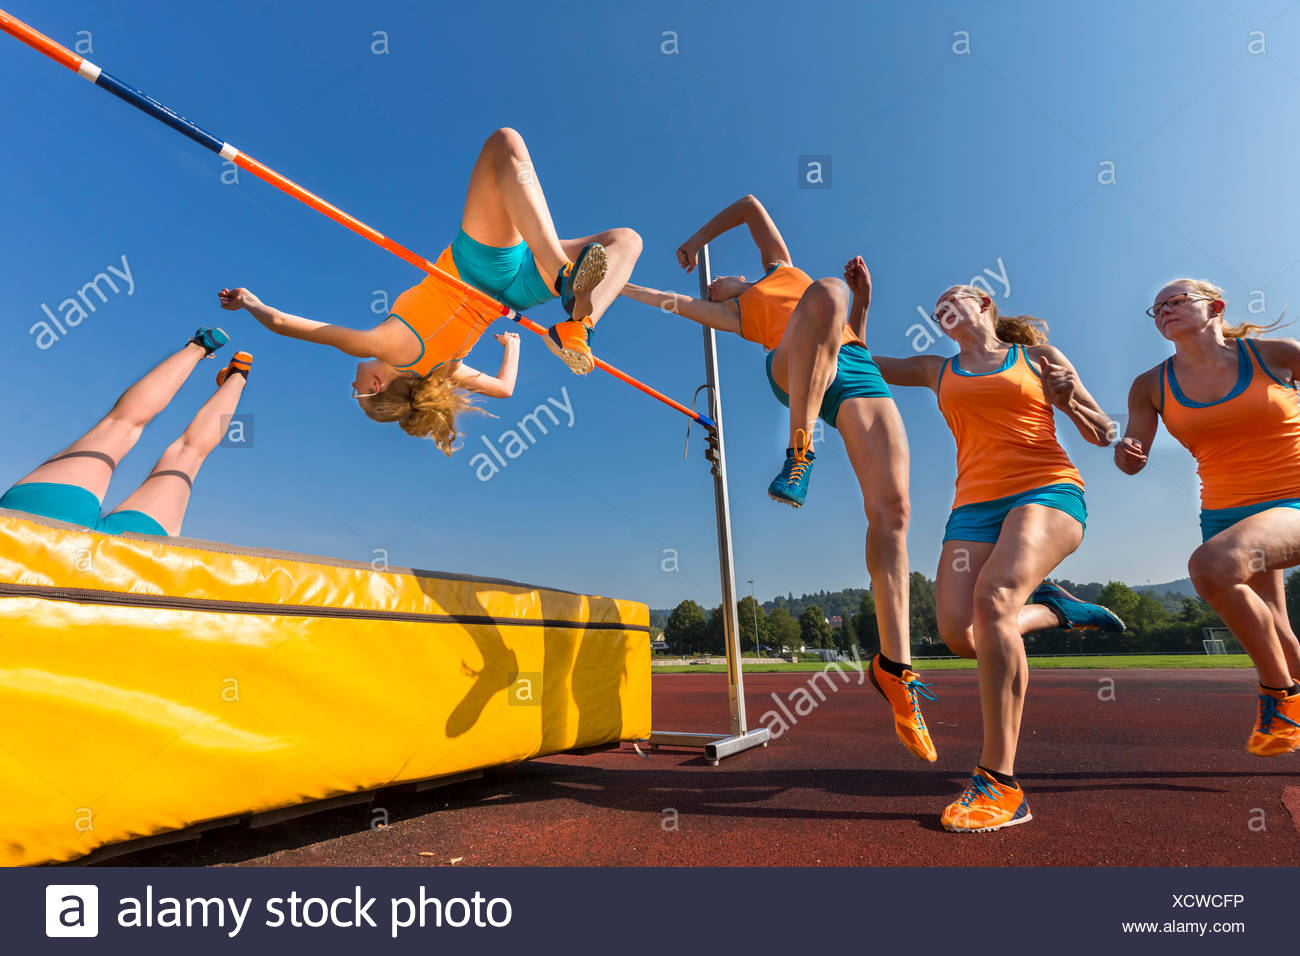 Sequence of high jumper crossing bar - Stock Image